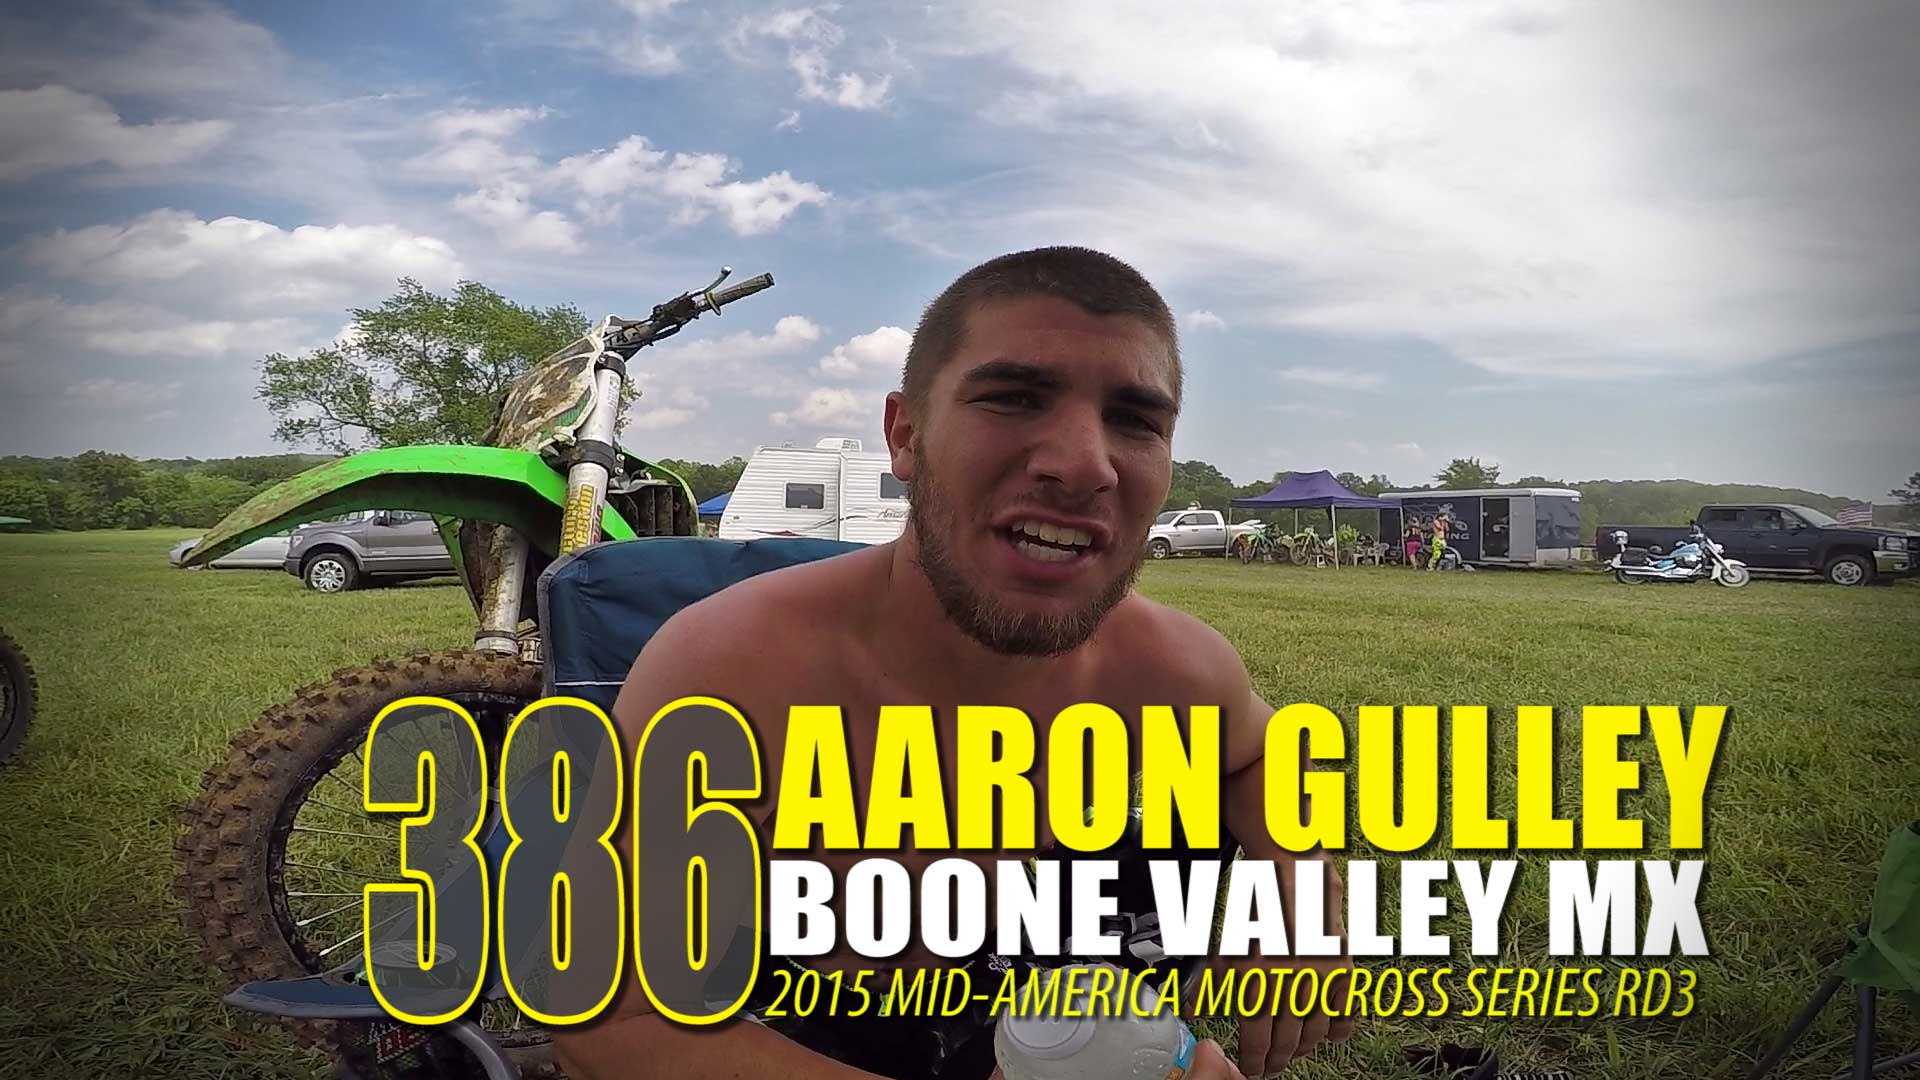 CHEST CAM: Aaron Gulley 250A Boone Valley MX Moto 2